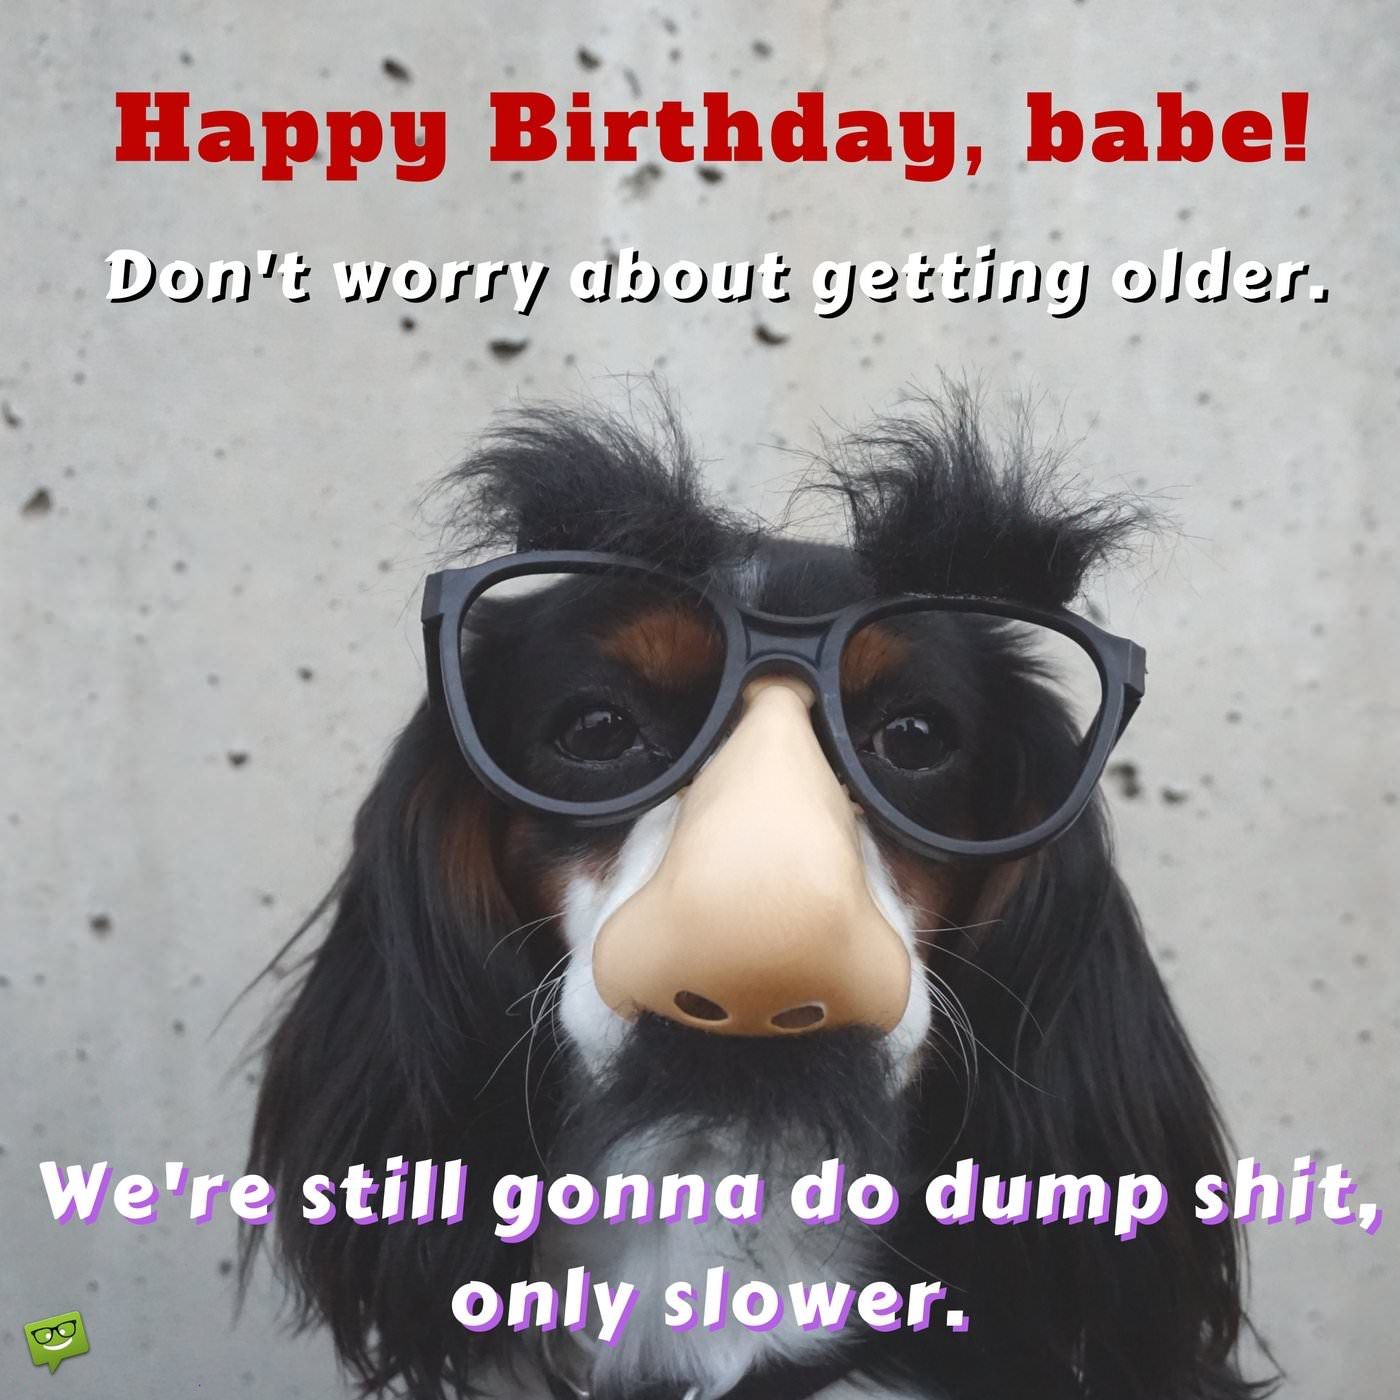 happy birthday wife funny ; Hilarious-birthday-wish-for-wife-on-image-with-funny-dog